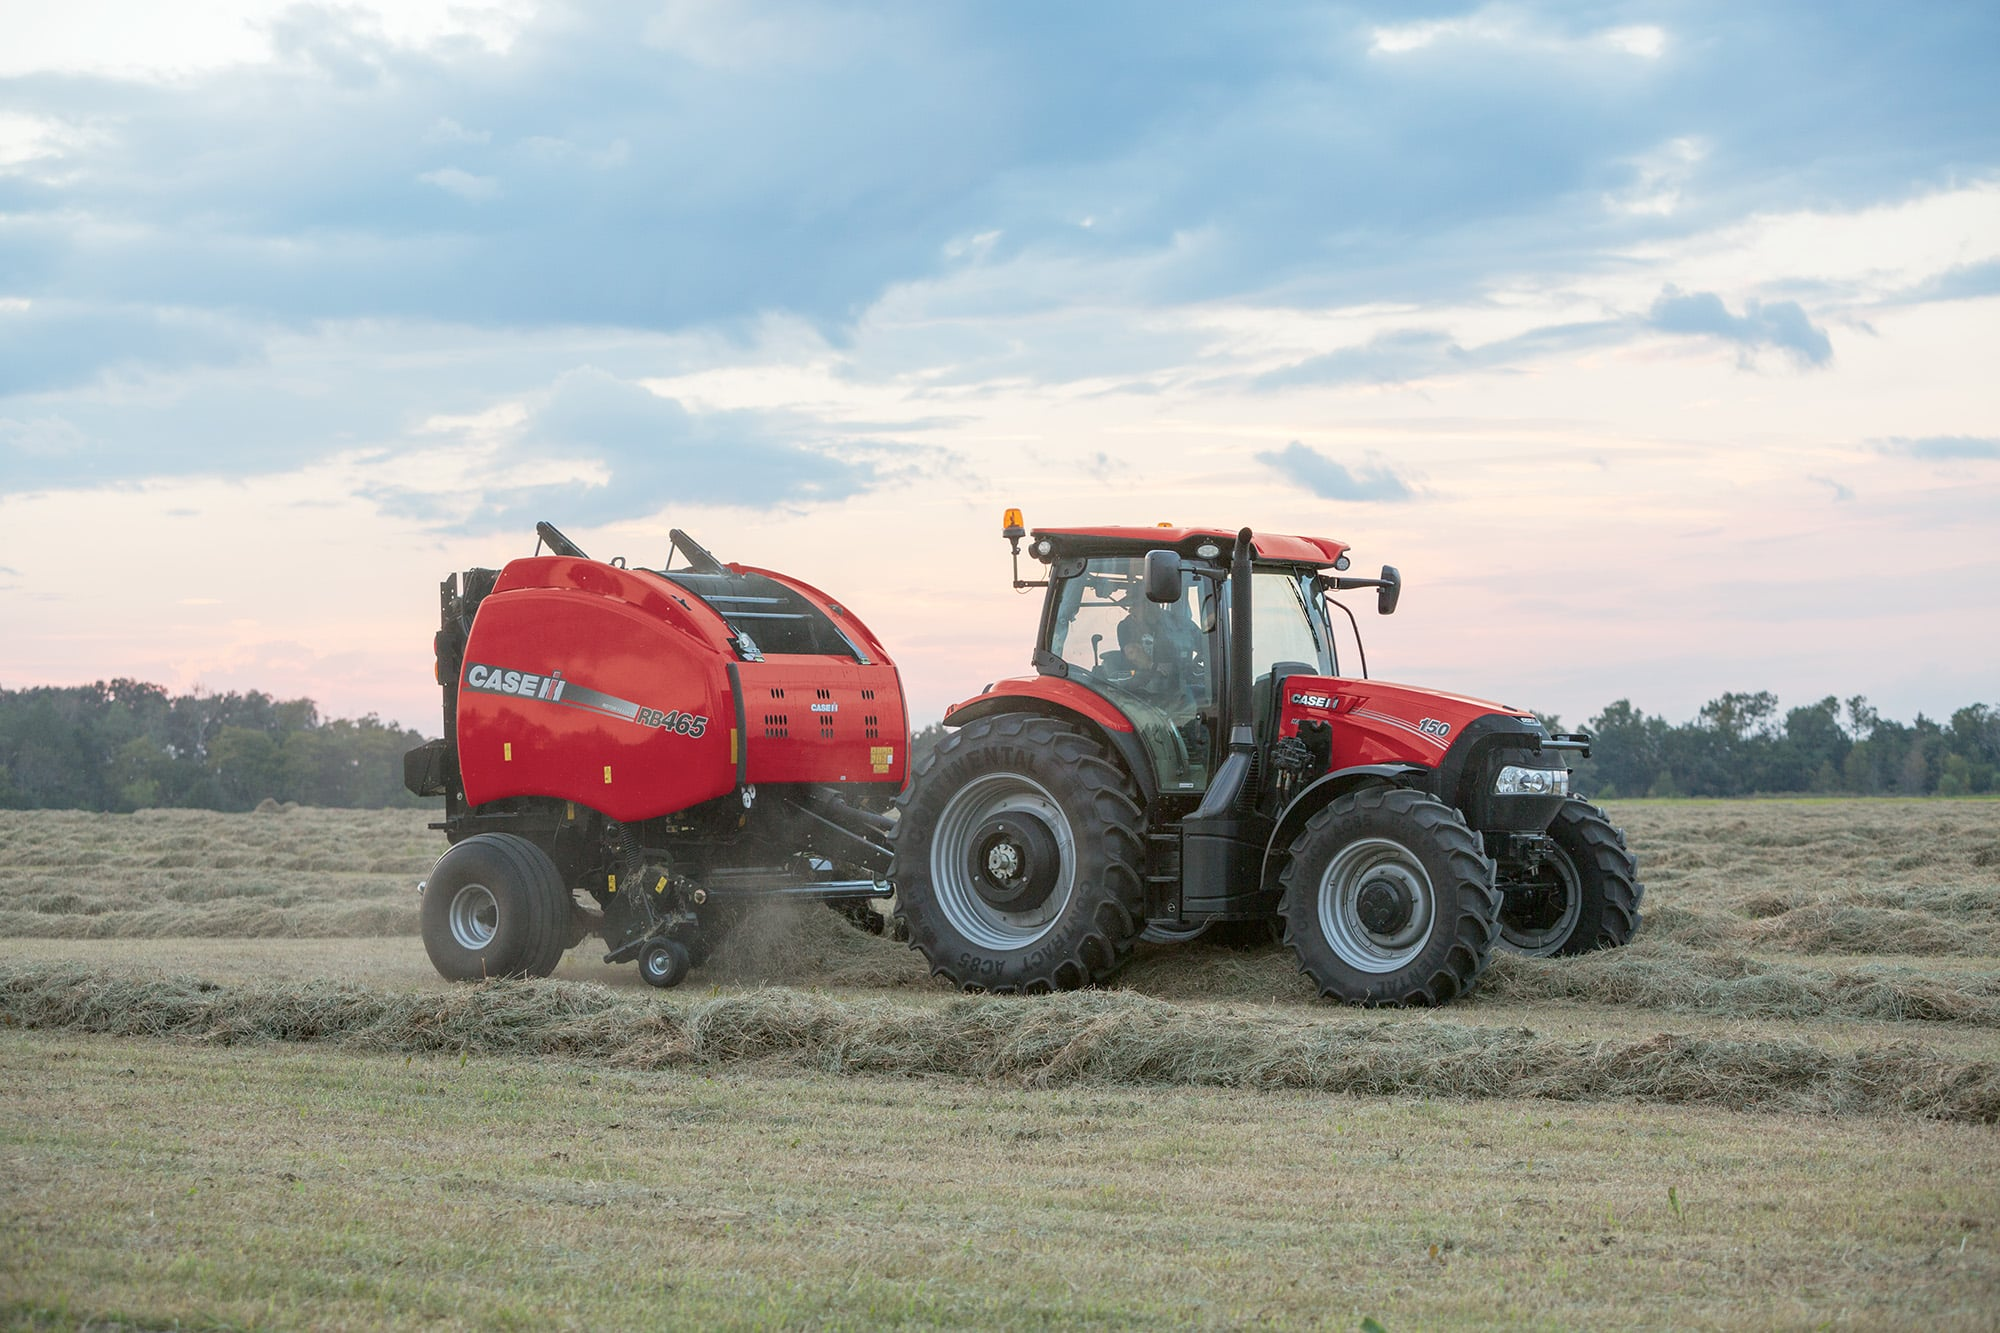 Maxxum_150_Tractor_with_RB_465_Baler_1414_10 14 case ih troubleshooting support information  at panicattacktreatment.co